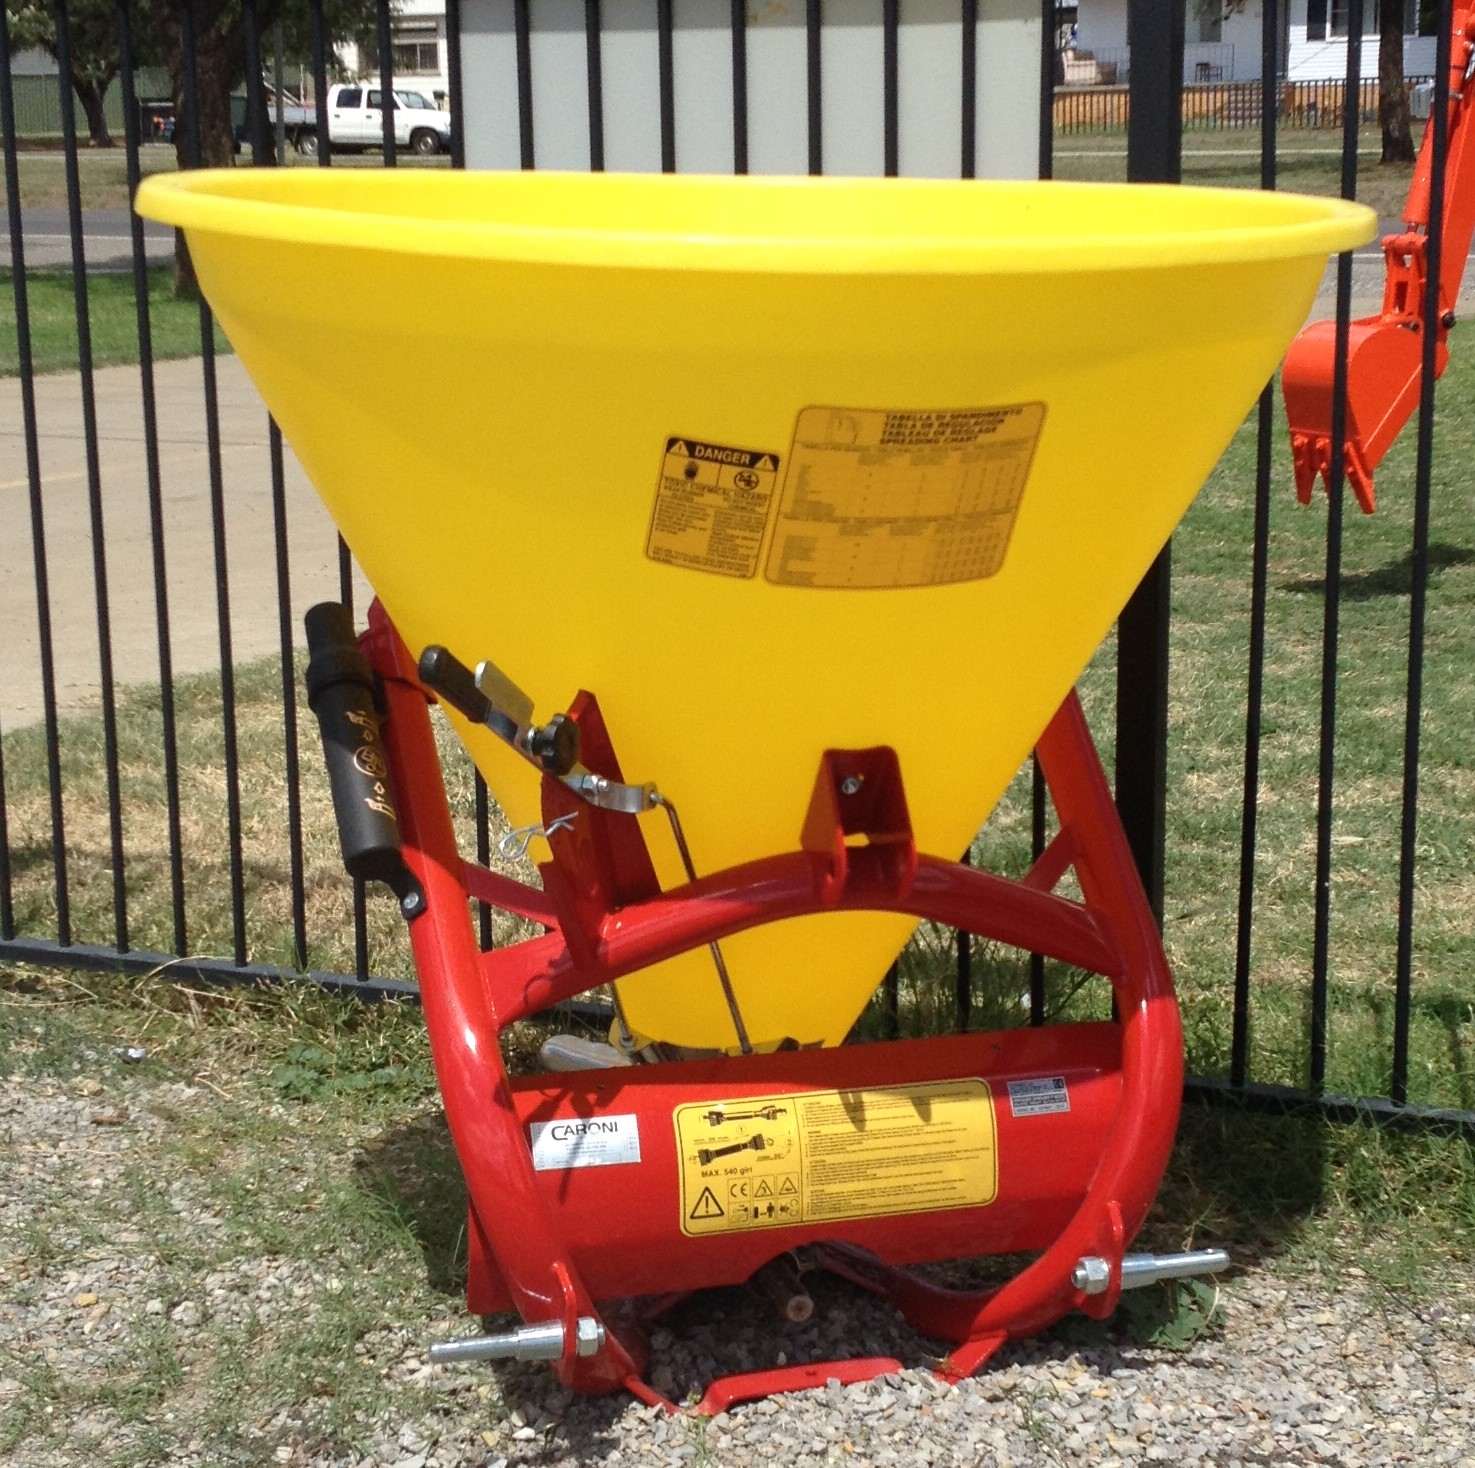 Caroni Cosmo P300 Spinner Spreader